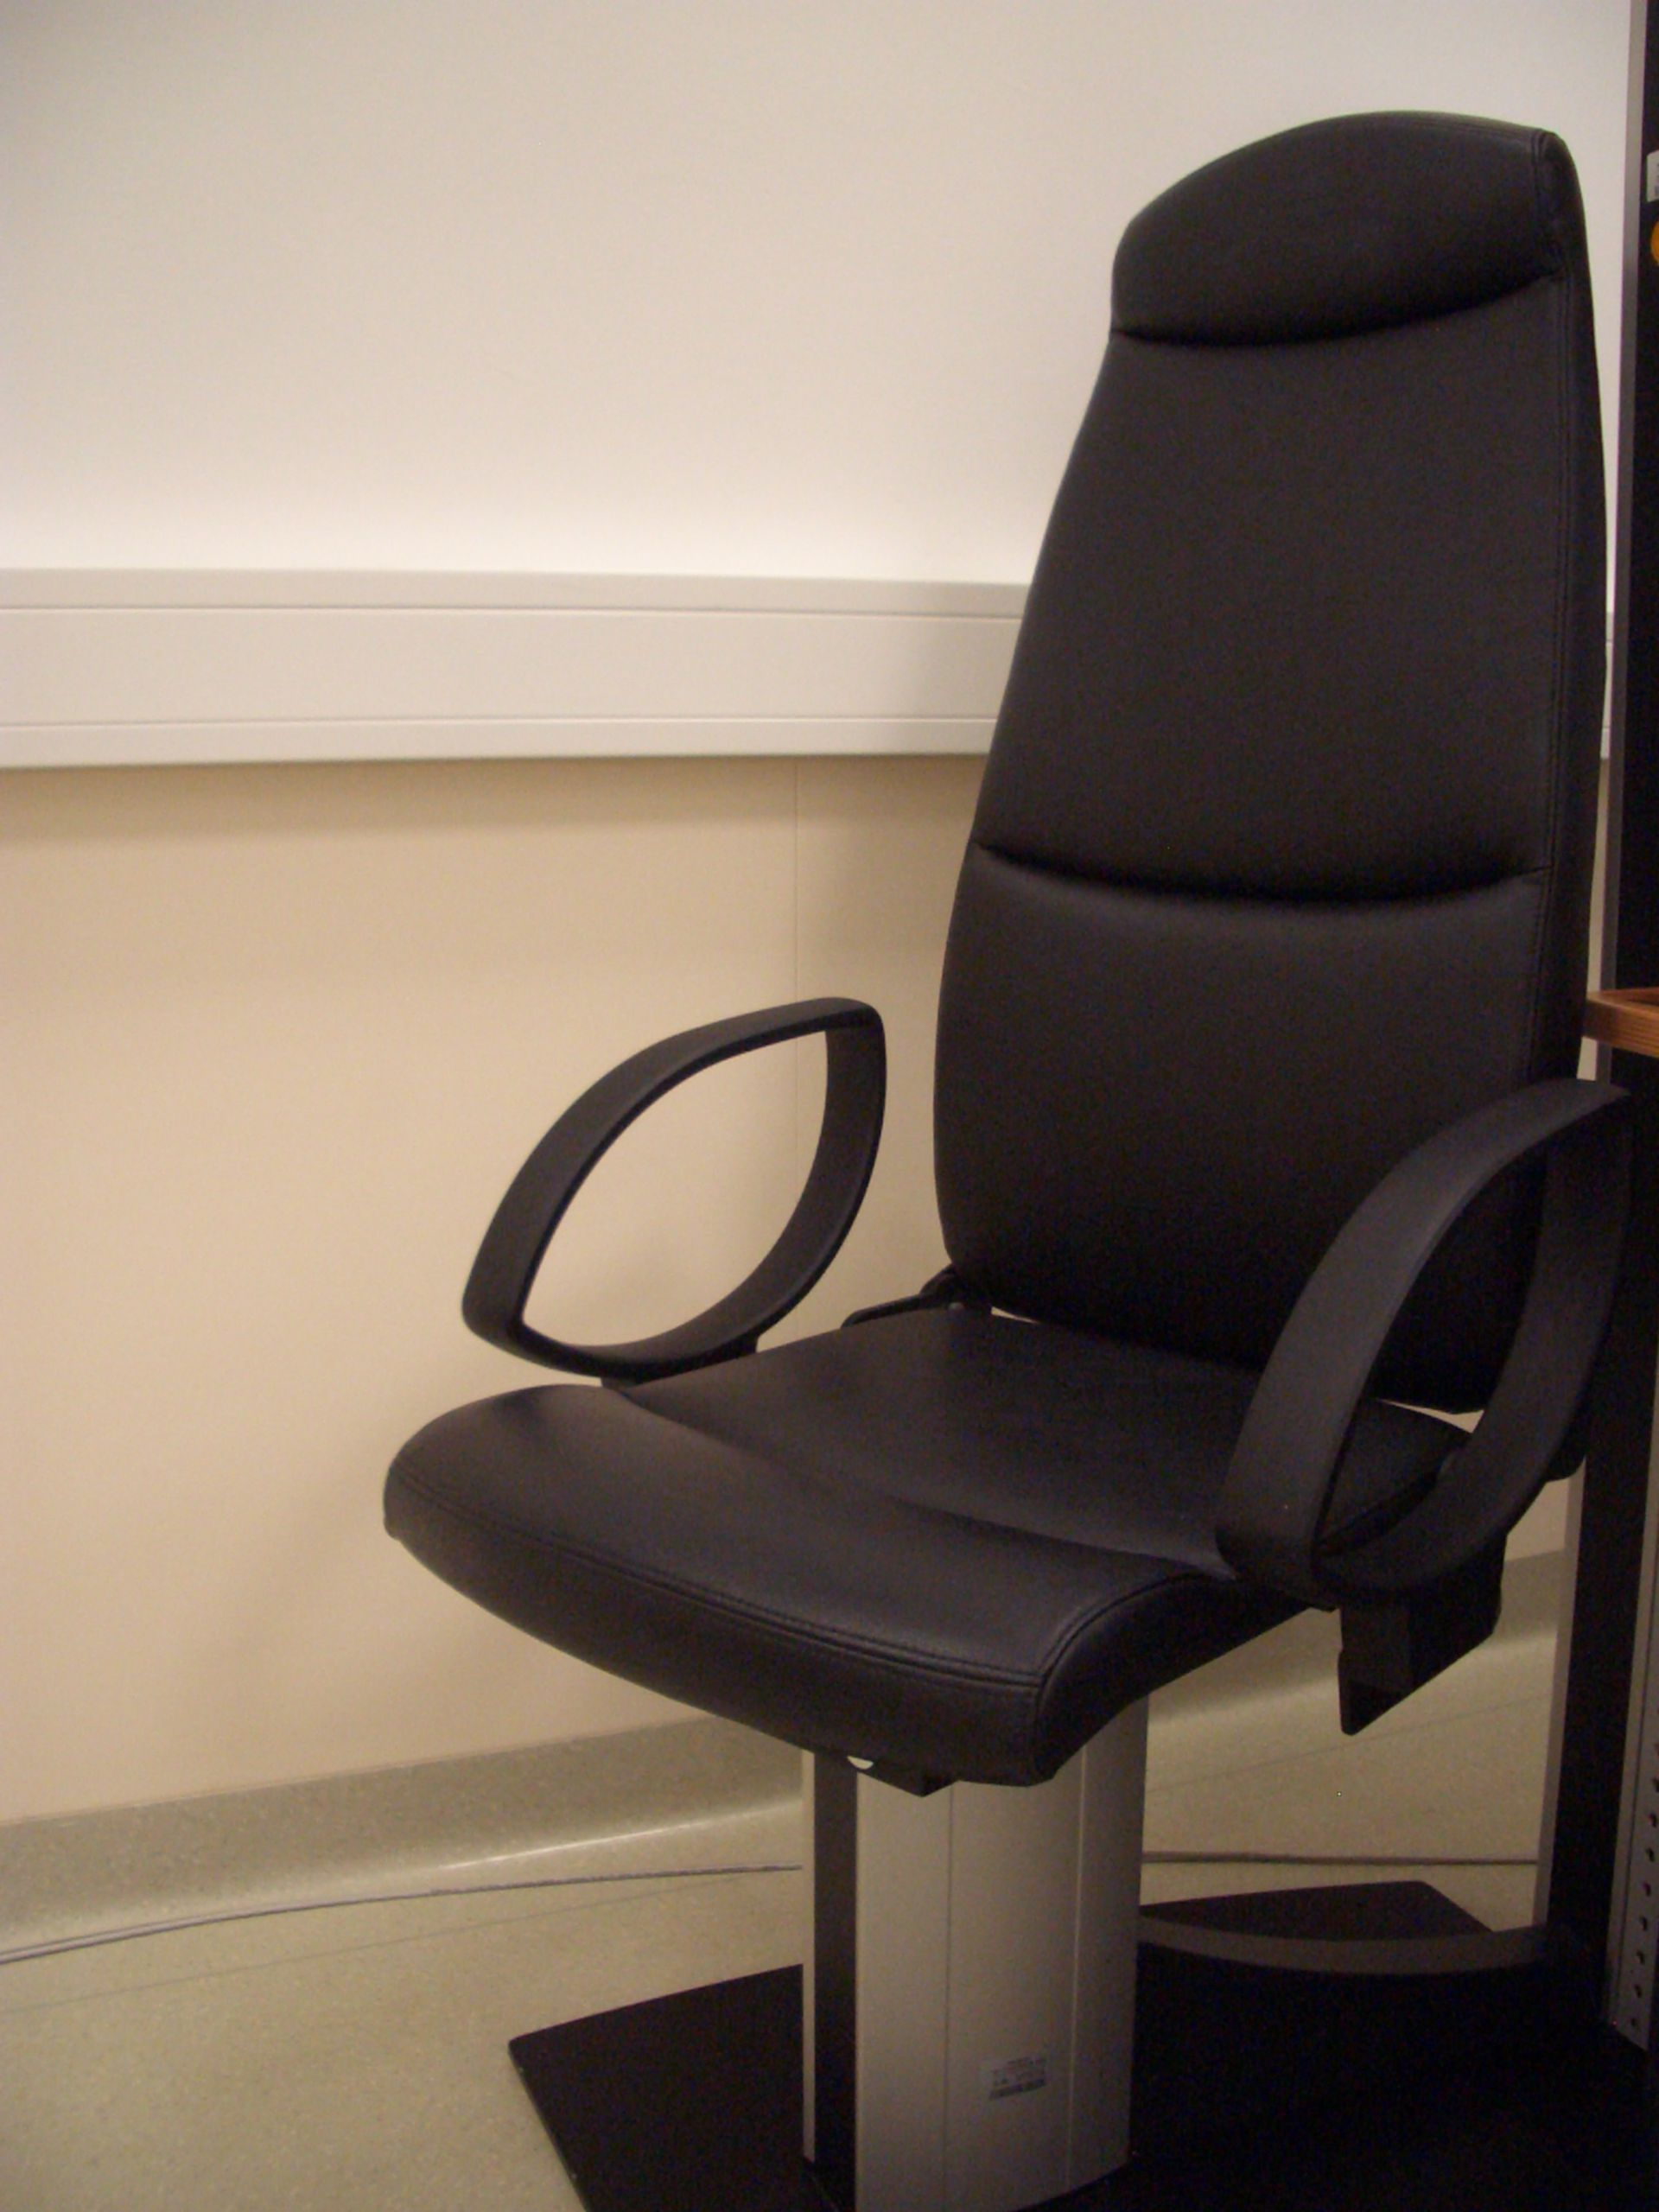 Ophthalmological Examination Chair